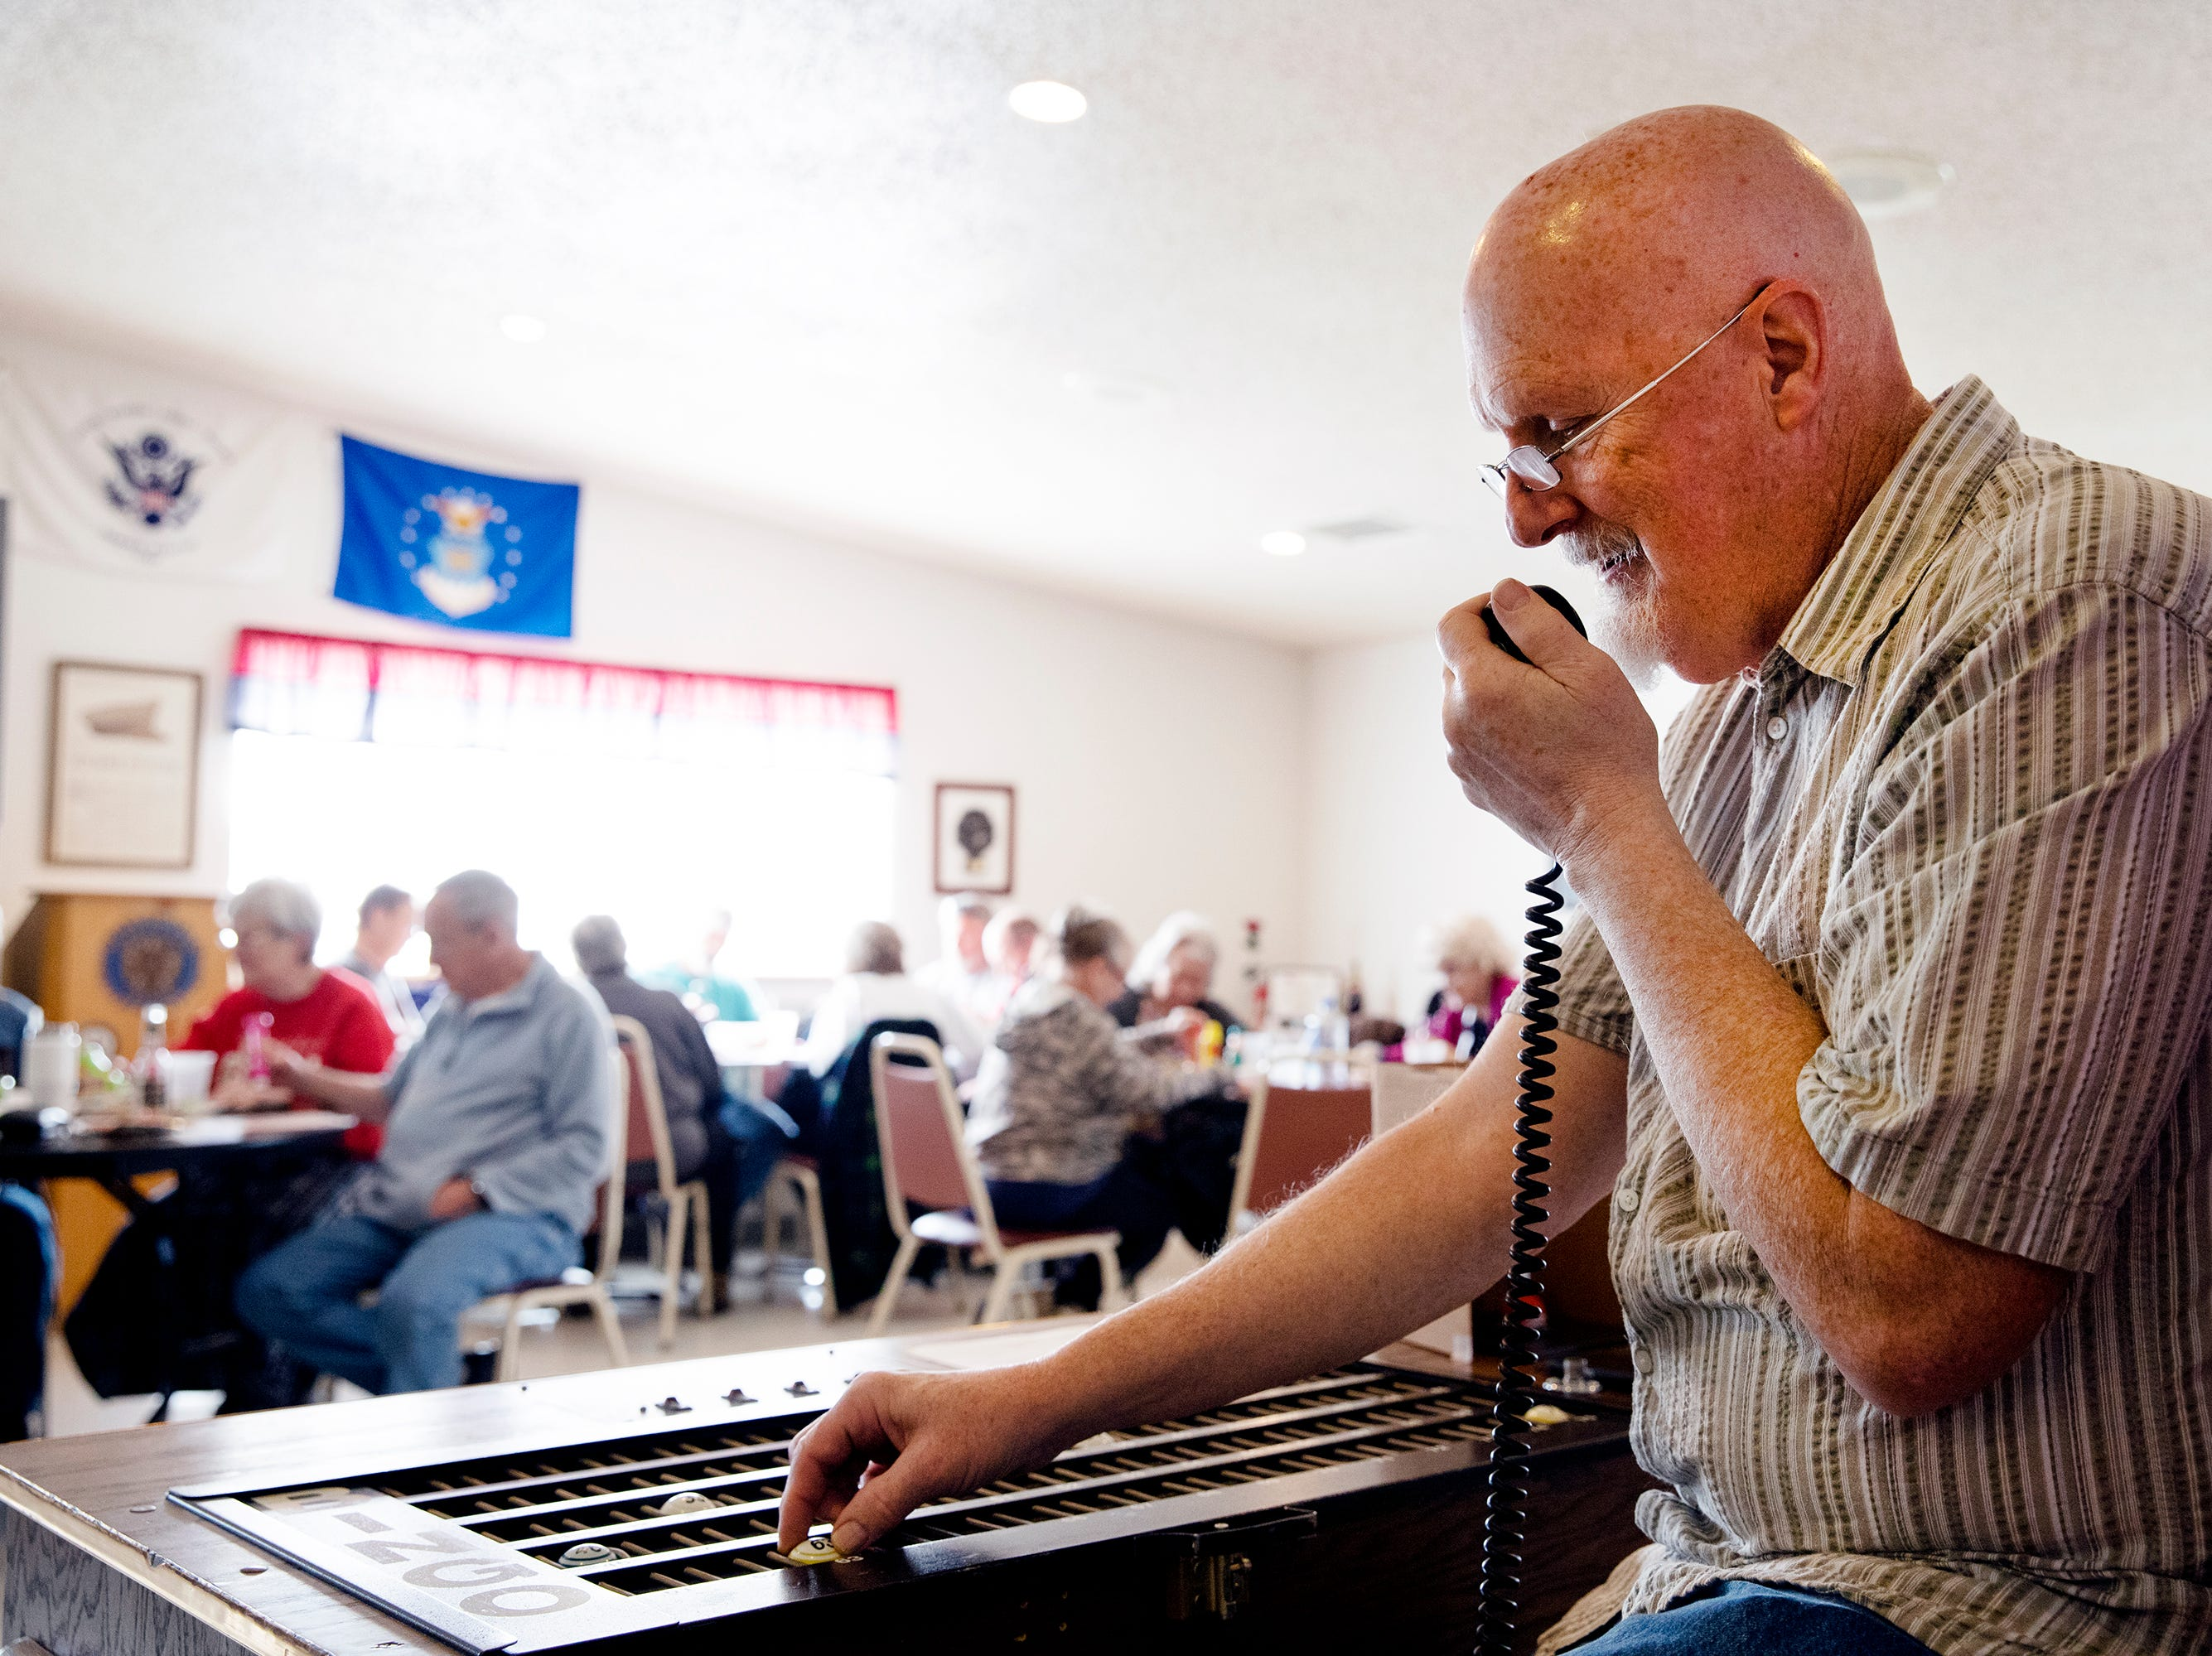 Gary Bishop calls a number during the weekly bingo game at the George Beach Post No. 4 of the American Legion on March 10. Bishop volunteers every other week as the caller for the games.